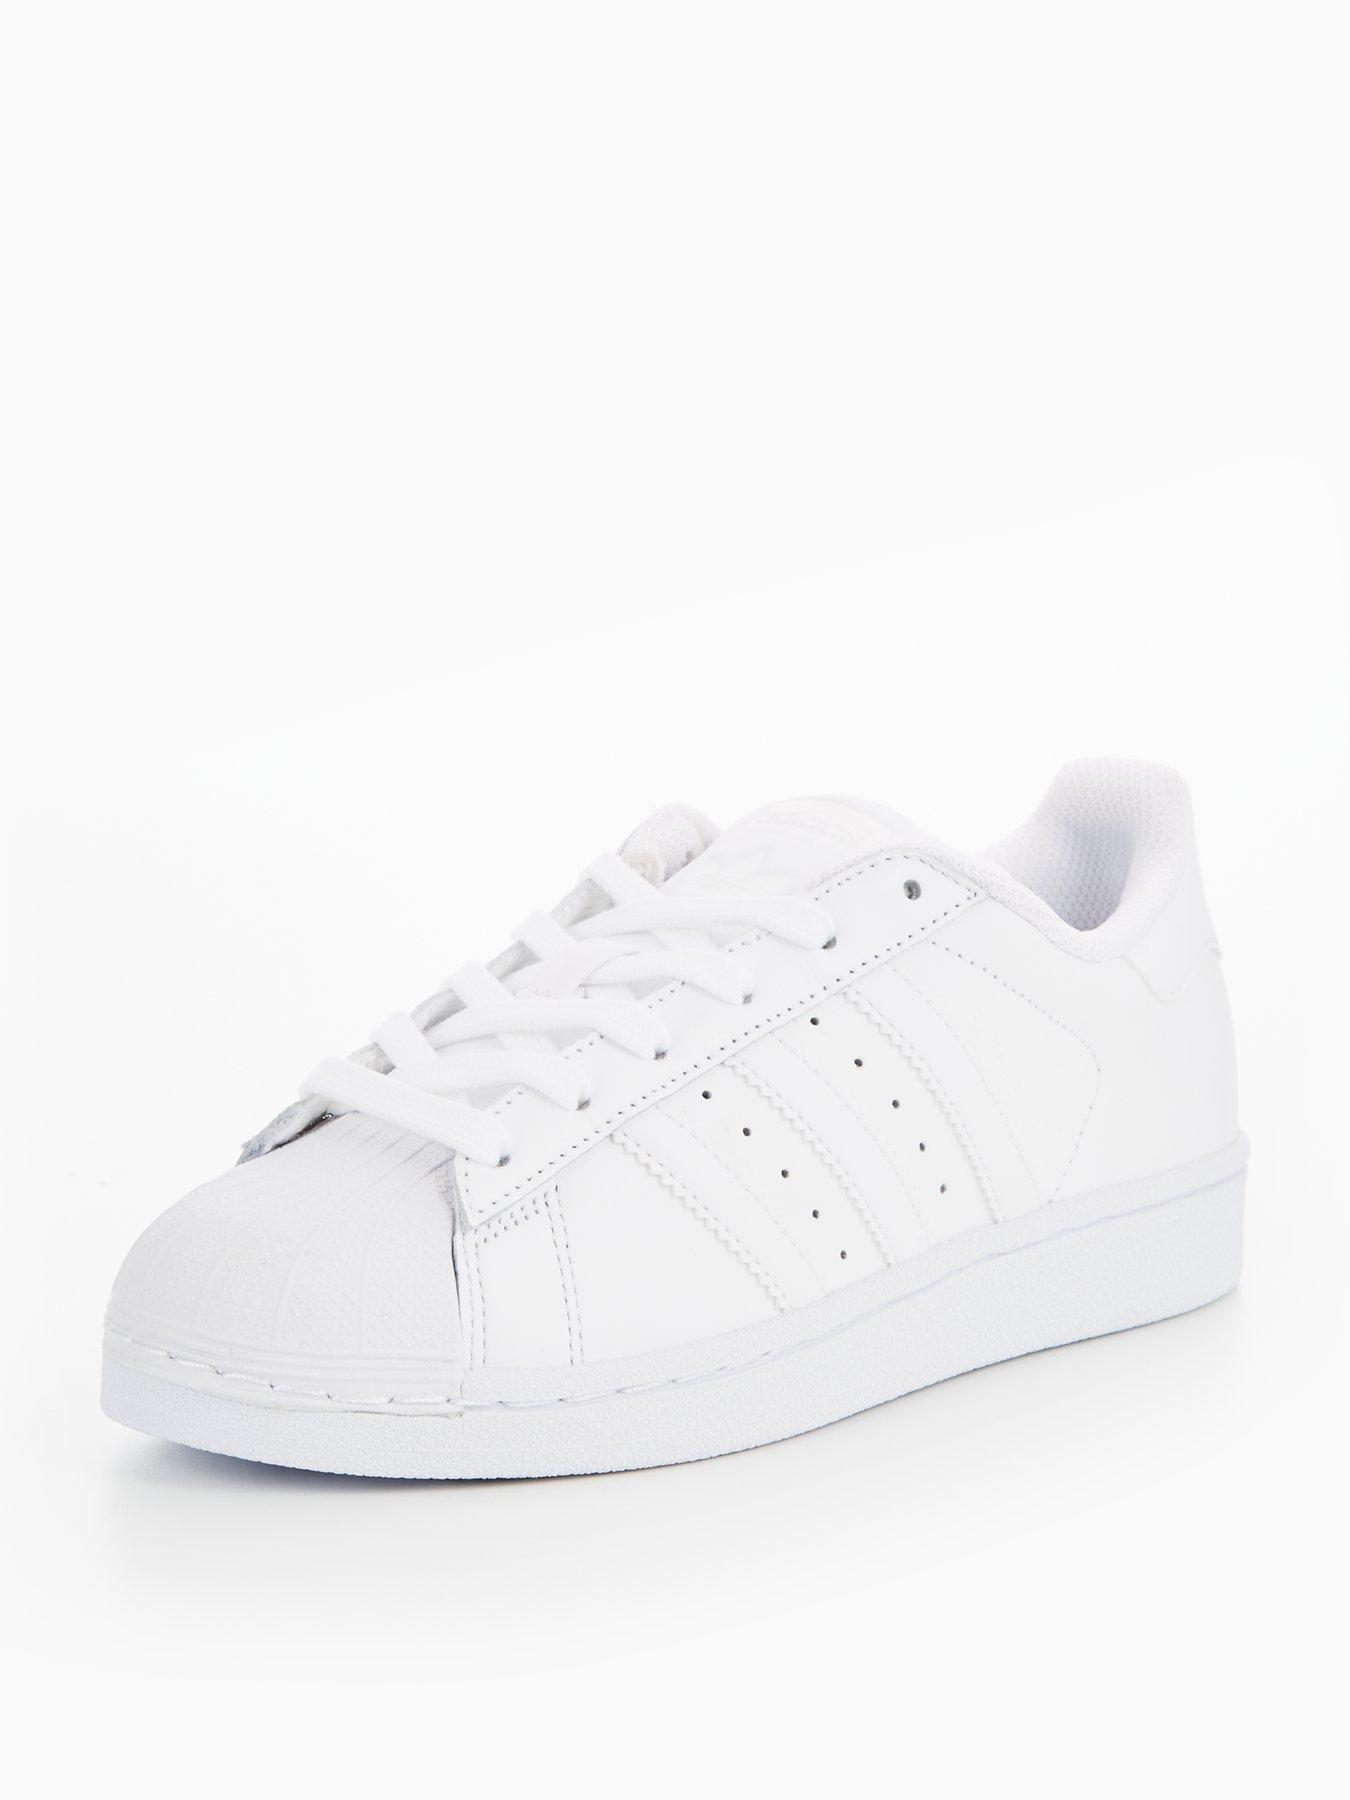 1350x1800 White Adidas Kids Amp Baby Sports Shoes Sports Amp Leisure Www